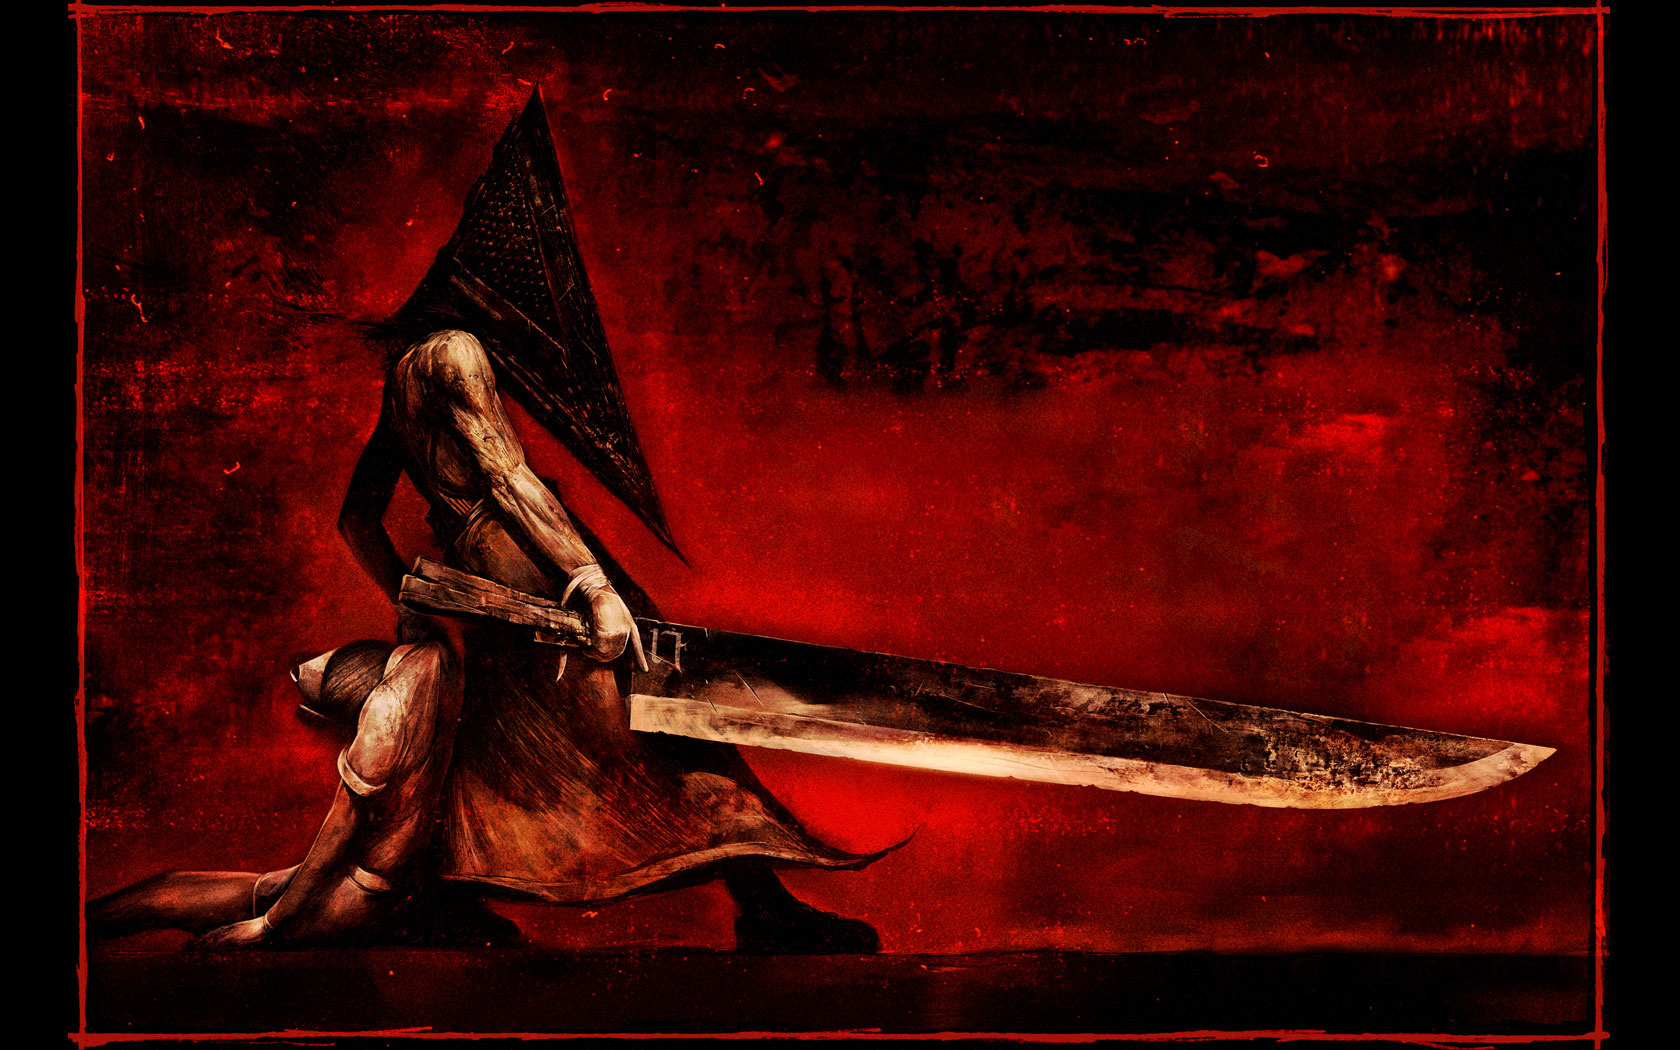 evil sword wallpaper - photo #7